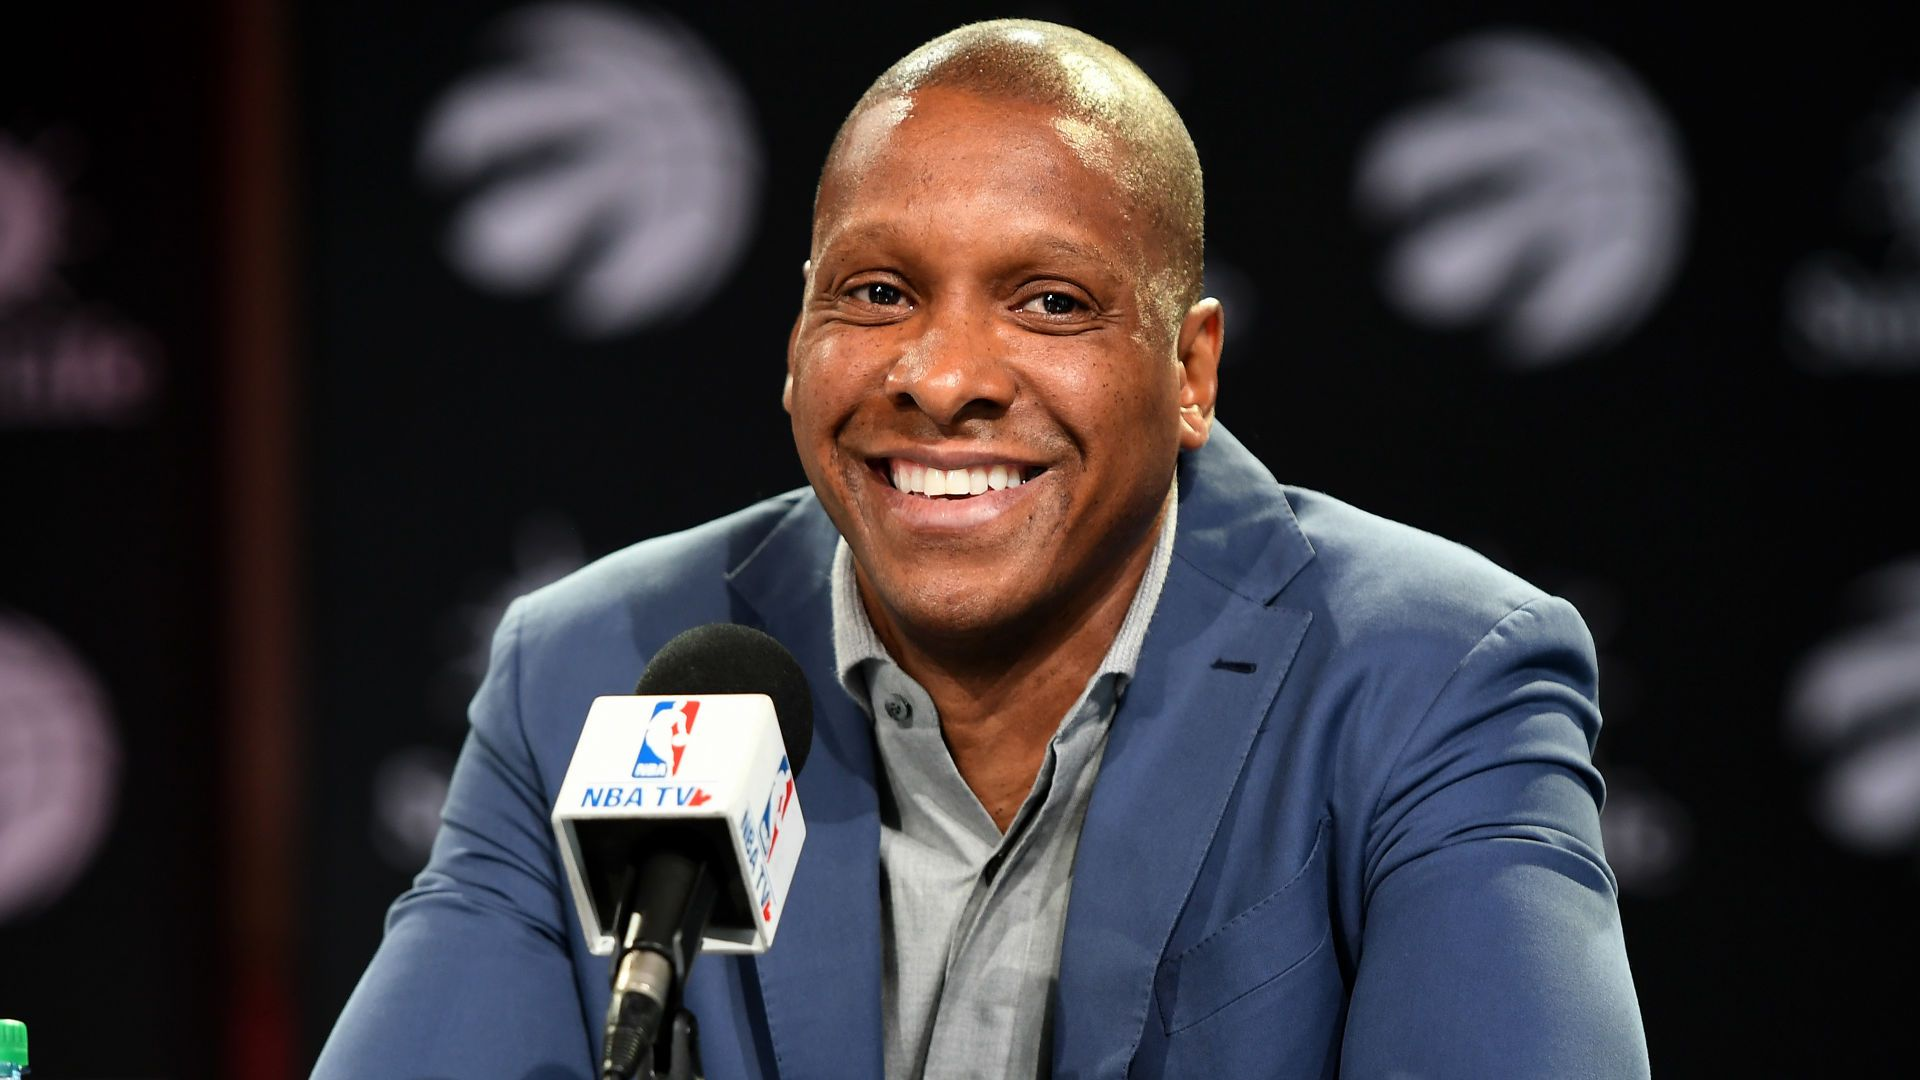 NBA Front Office Report: Knicks Could Lure Masai Ujiri Out Of Toronto